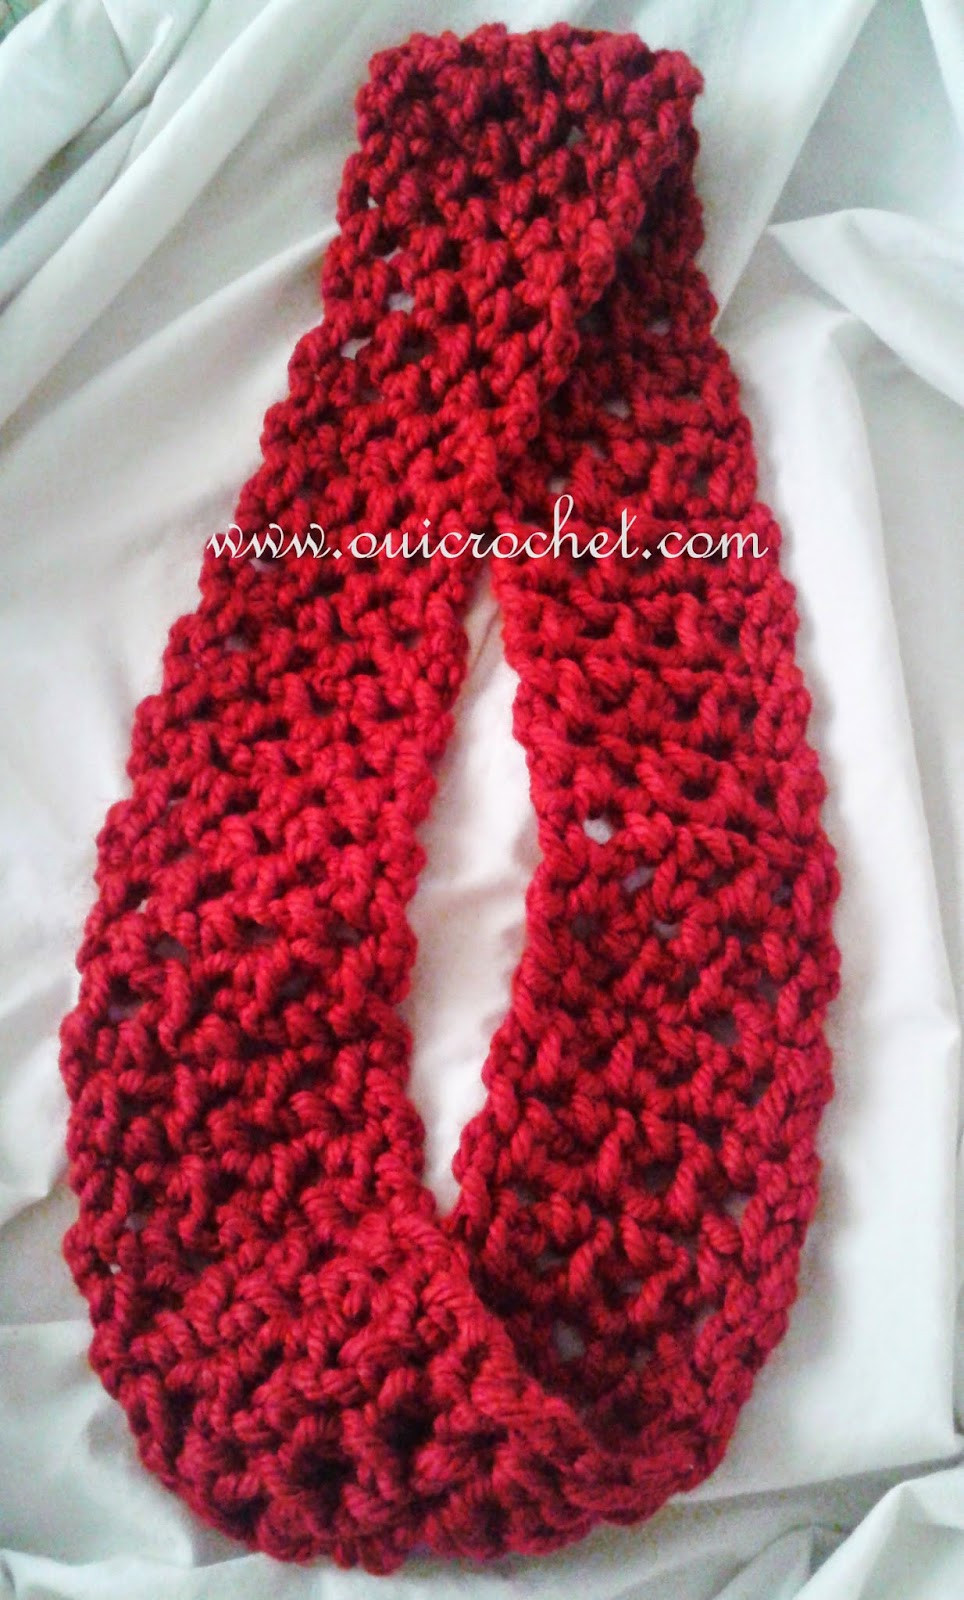 Awesome Oui Crochet Quick Infinity Scarf Free Crochet Pattern Free Quick and Easy Crochet Scarf Patterns Of Wonderful 42 Photos Free Quick and Easy Crochet Scarf Patterns